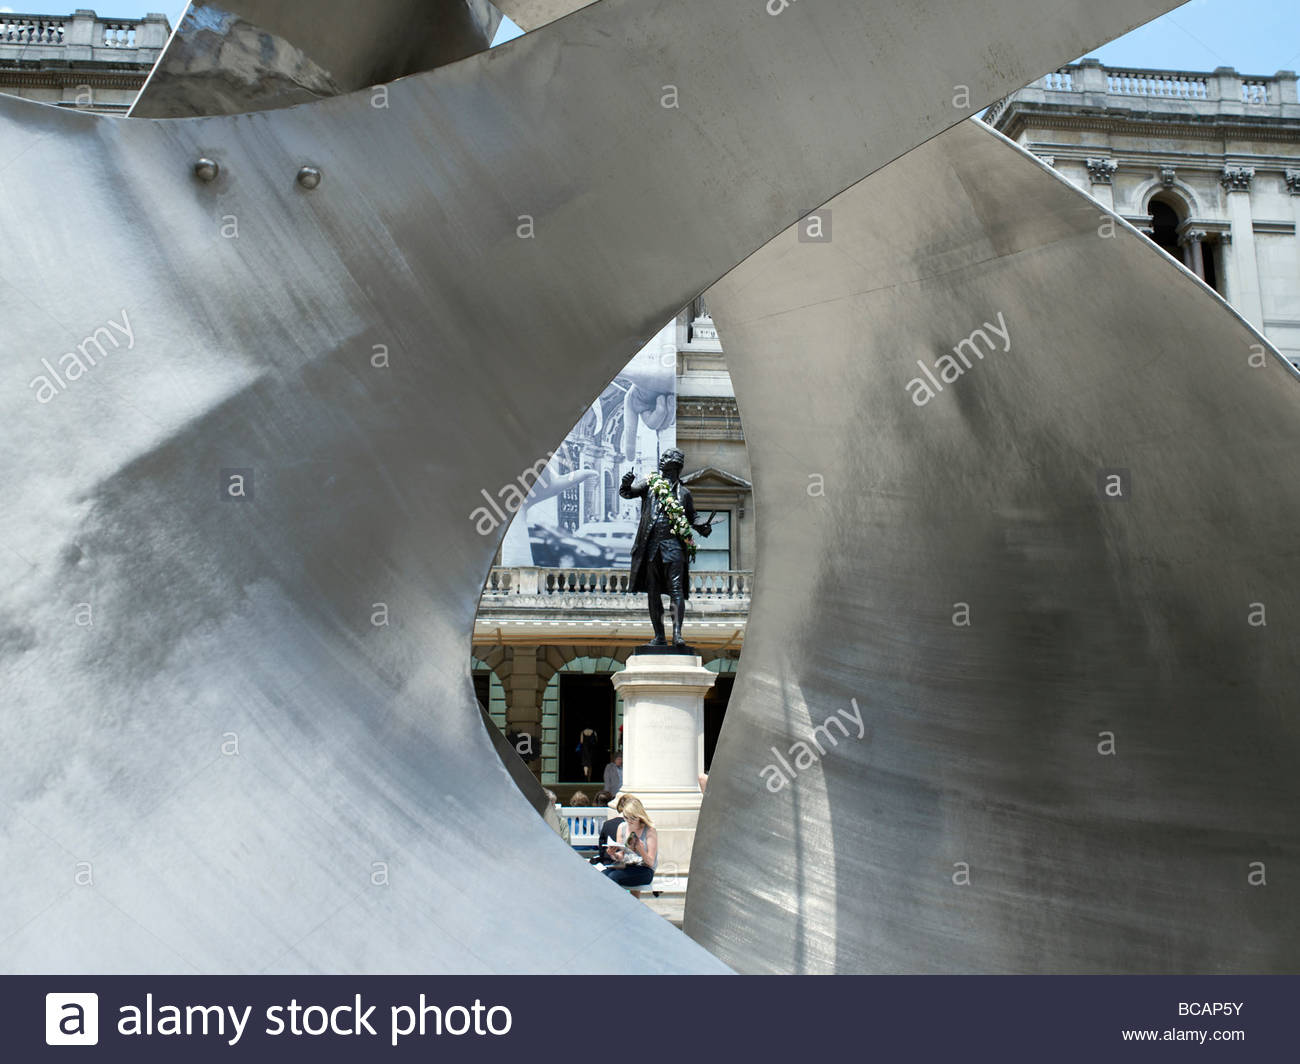 Royal Academy of Arts in London entrance and archway., Burlington House in Picadilly. - Stock Image